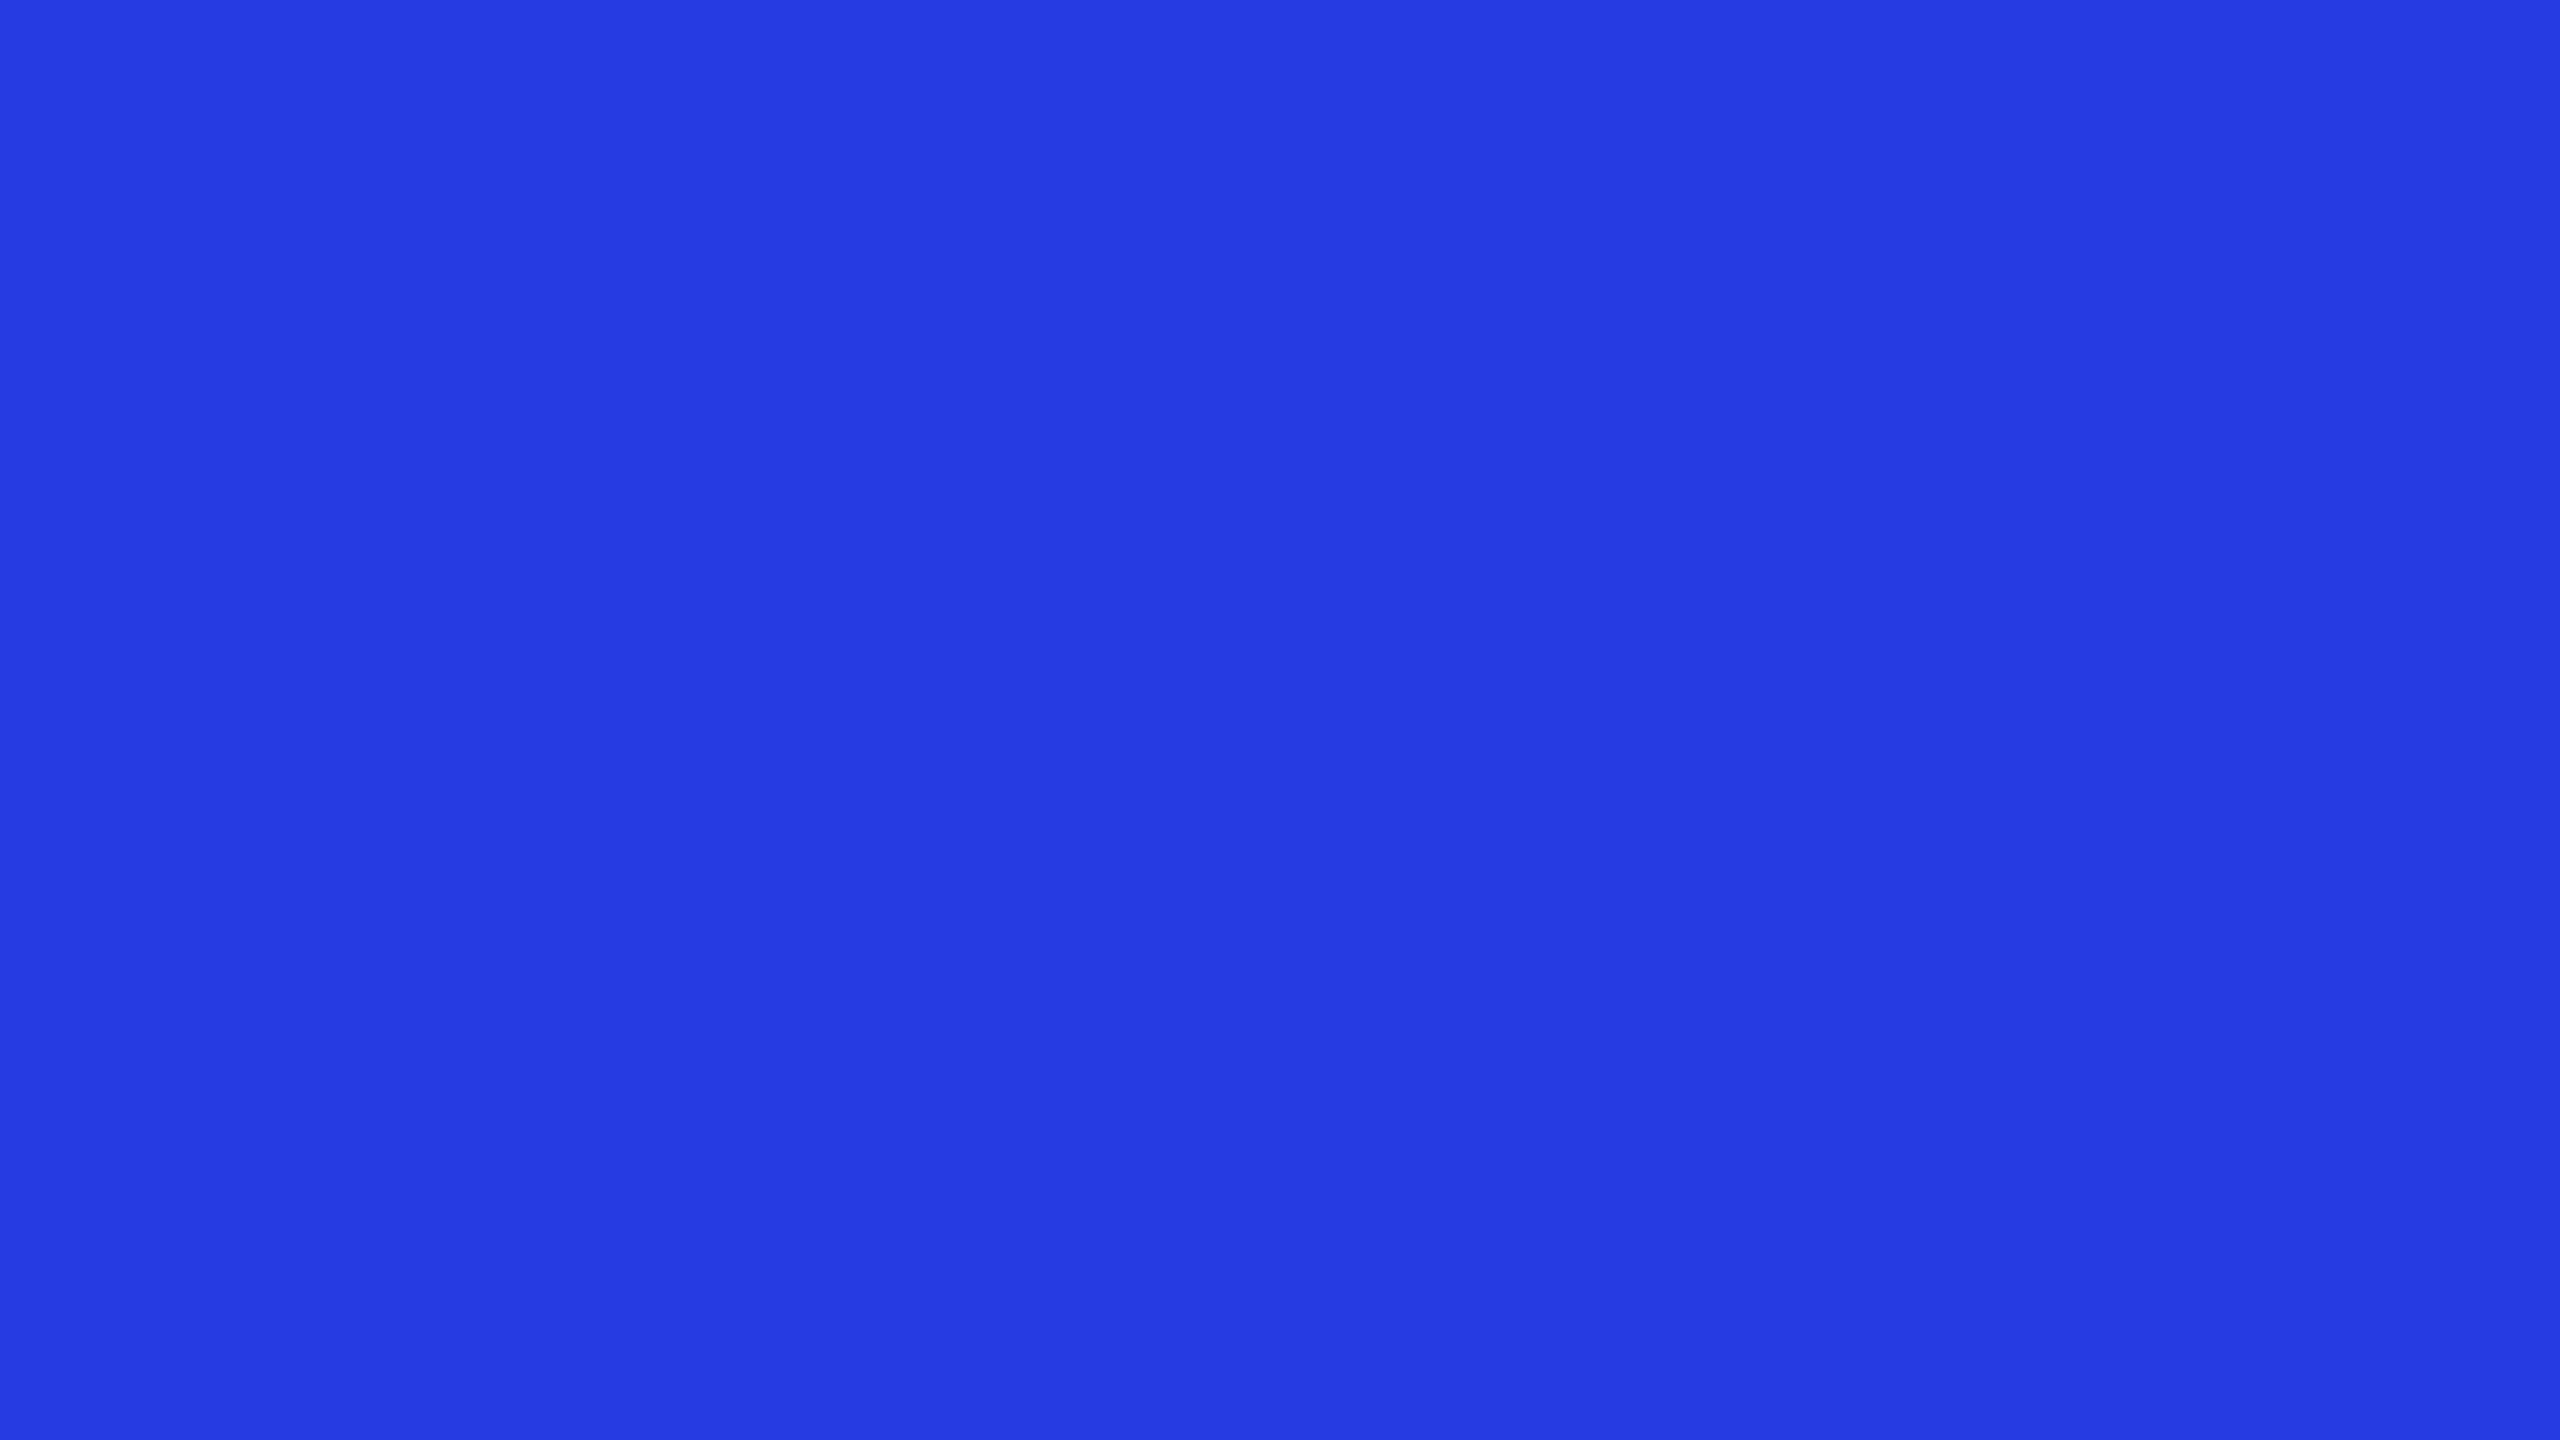 2560x1440 Palatinate Blue Solid Color Background